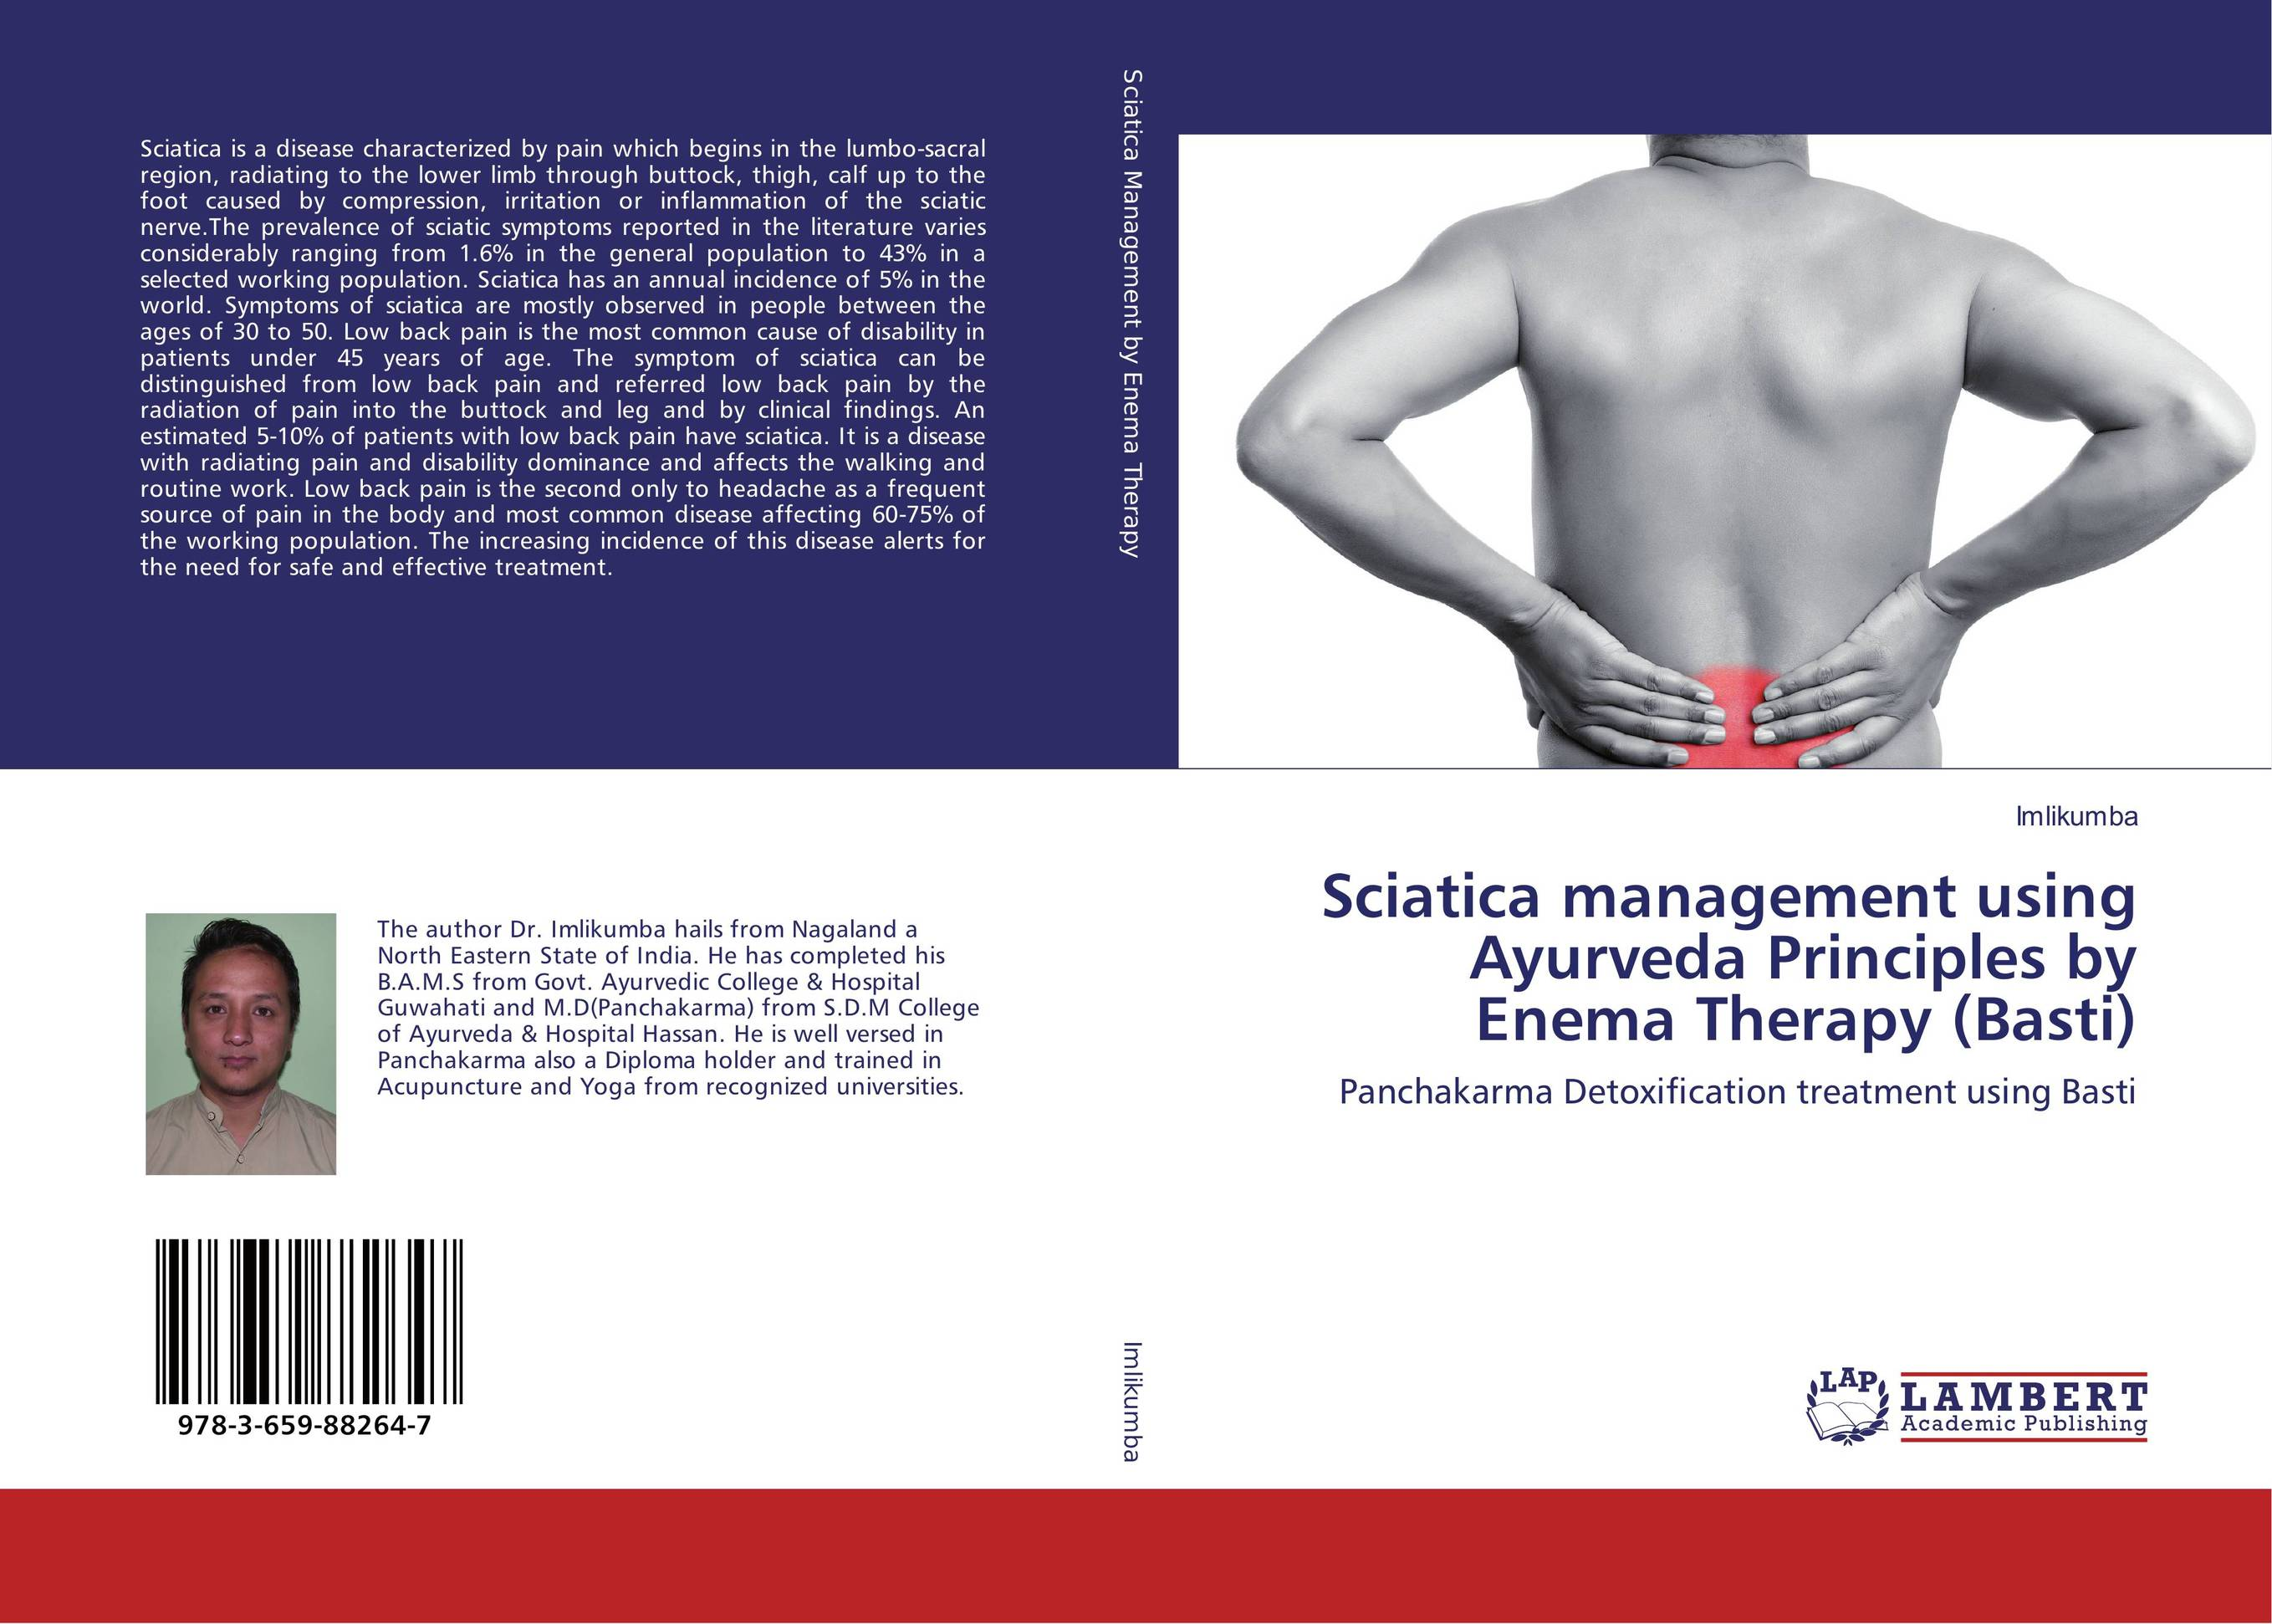 Sciatica management using Ayurveda Principles by Enema Therapy (Basti) a physician s guide to pain and symptom management in cancer patients 2e